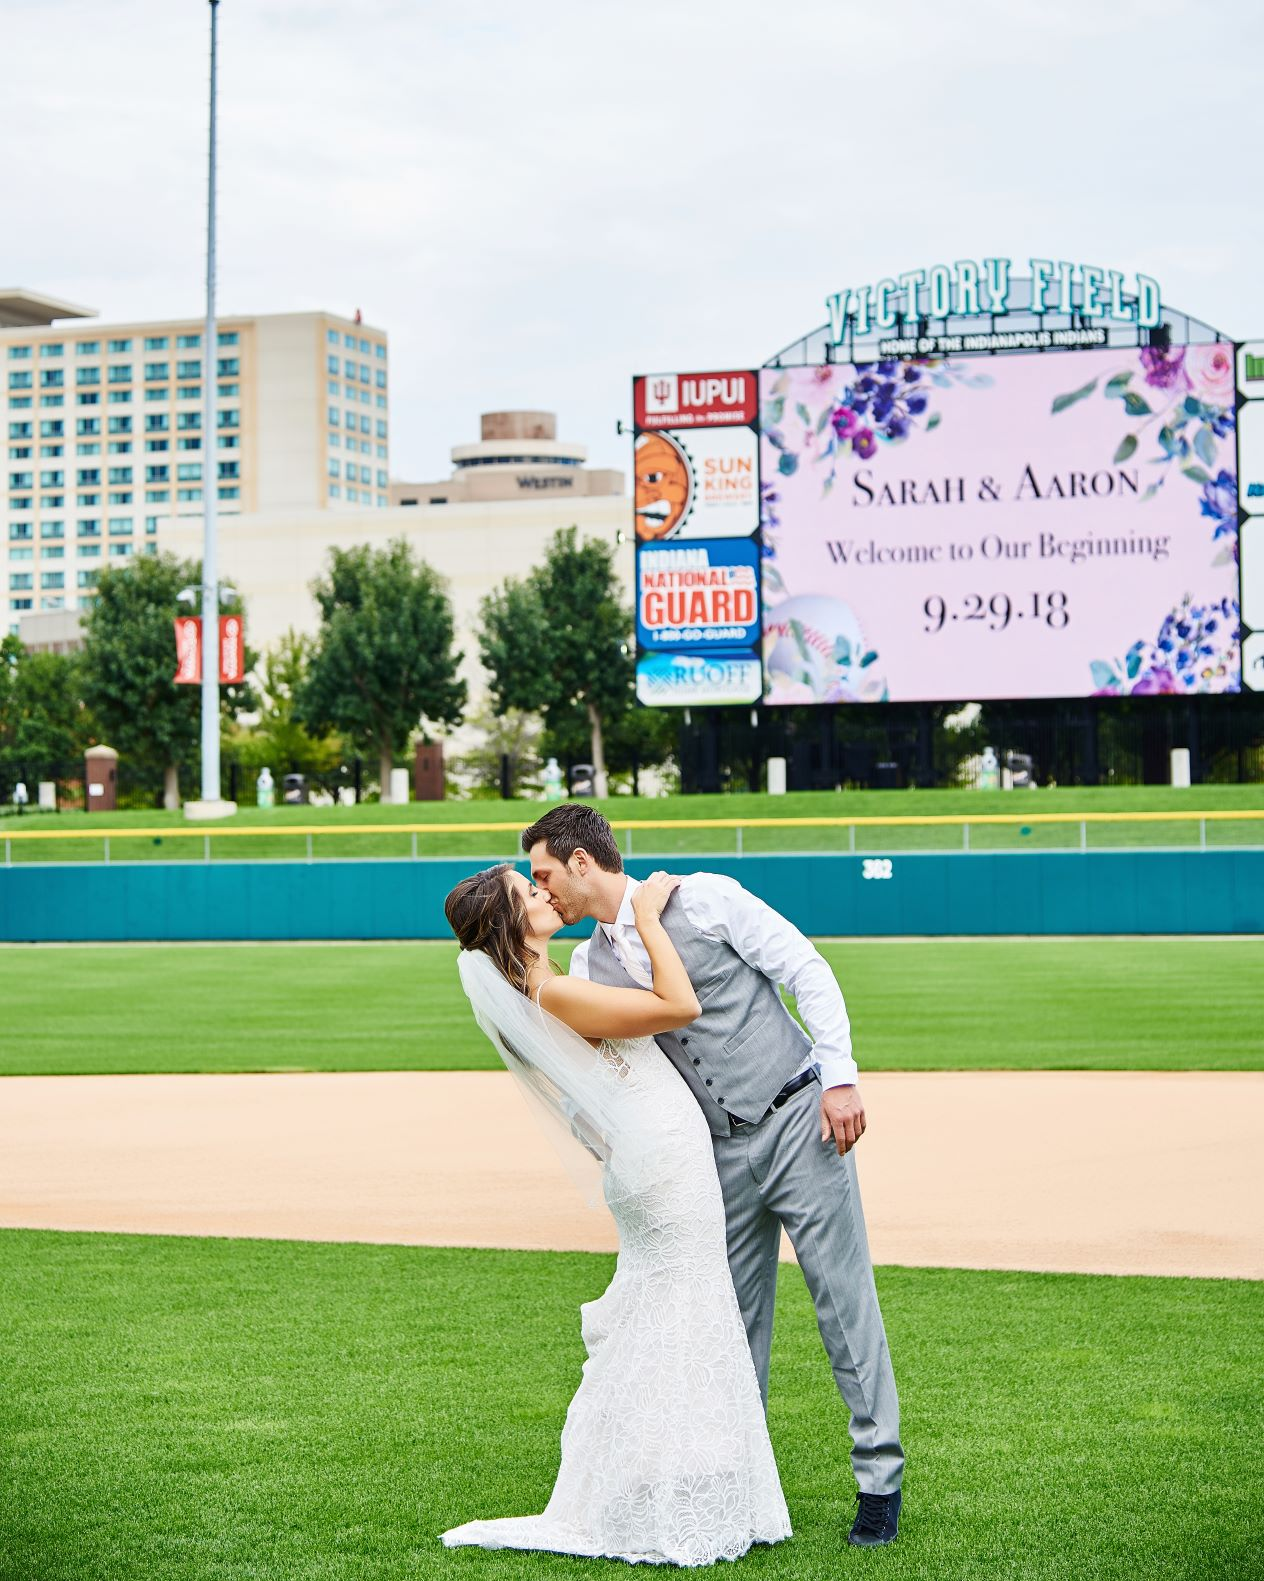 videoboard kiss - Sarah Johnson.jpg